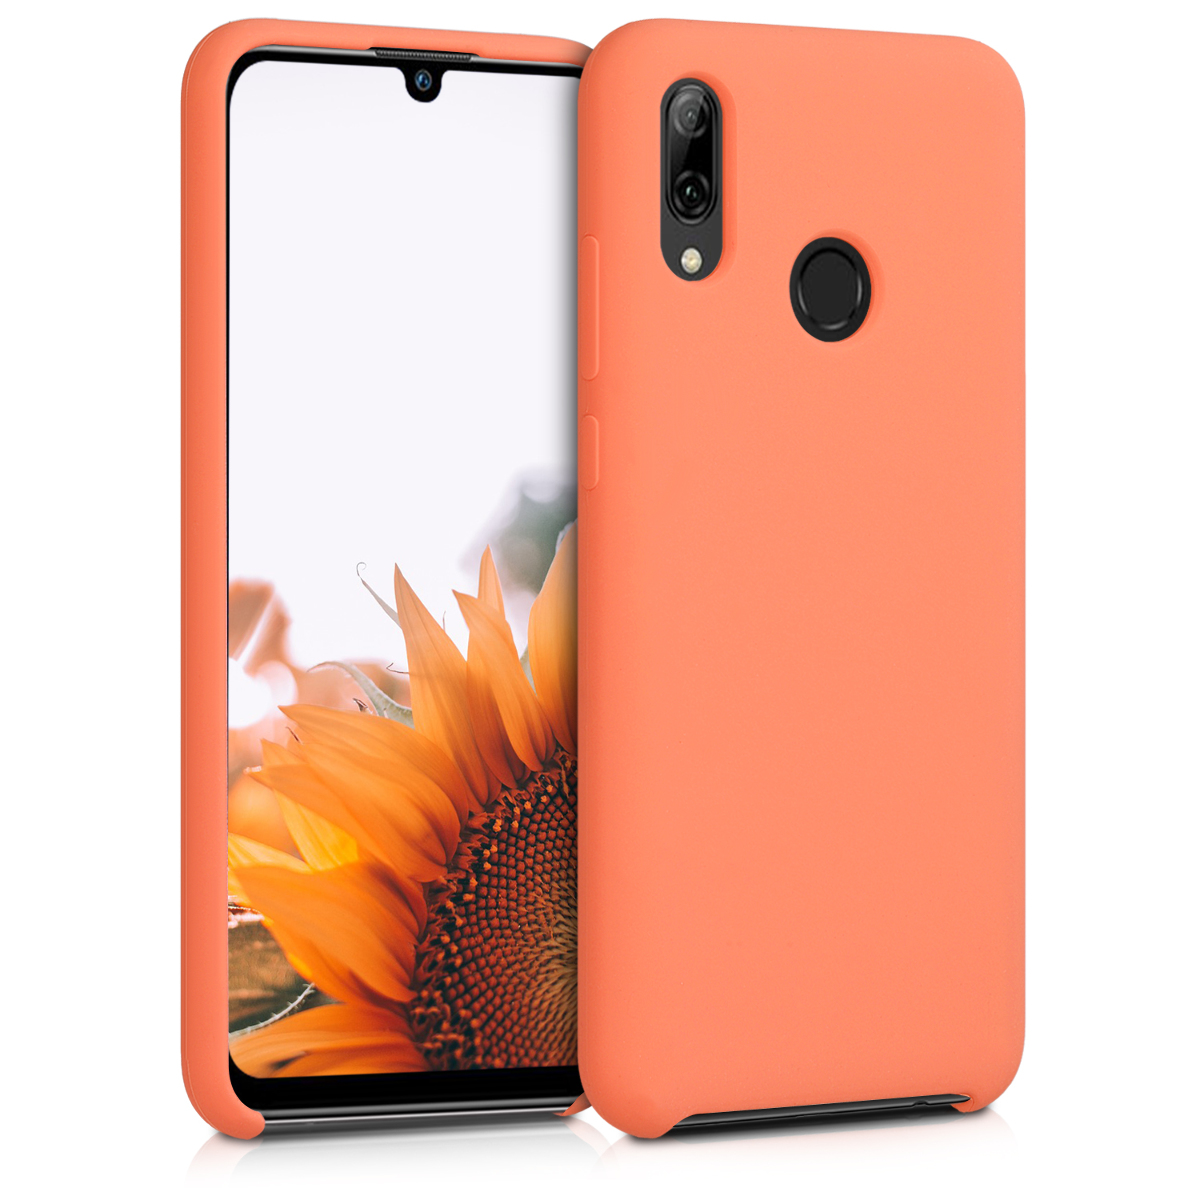 KW Θήκη Σιλικόνης Huawei P Smart 2019 - Soft Flexible Rubber - Papaya (47824.144)